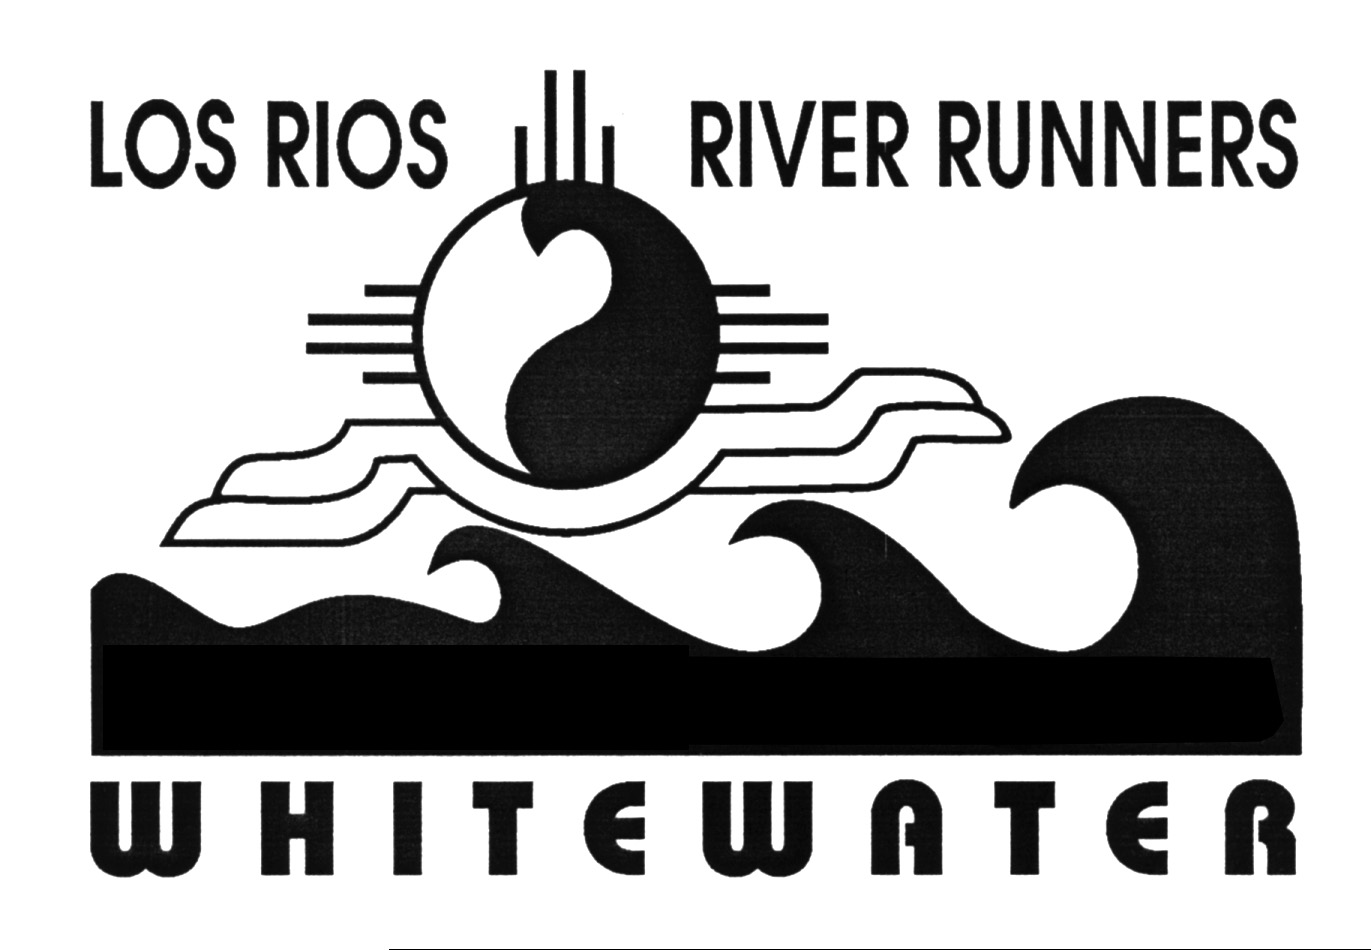 Los Rios River Runners